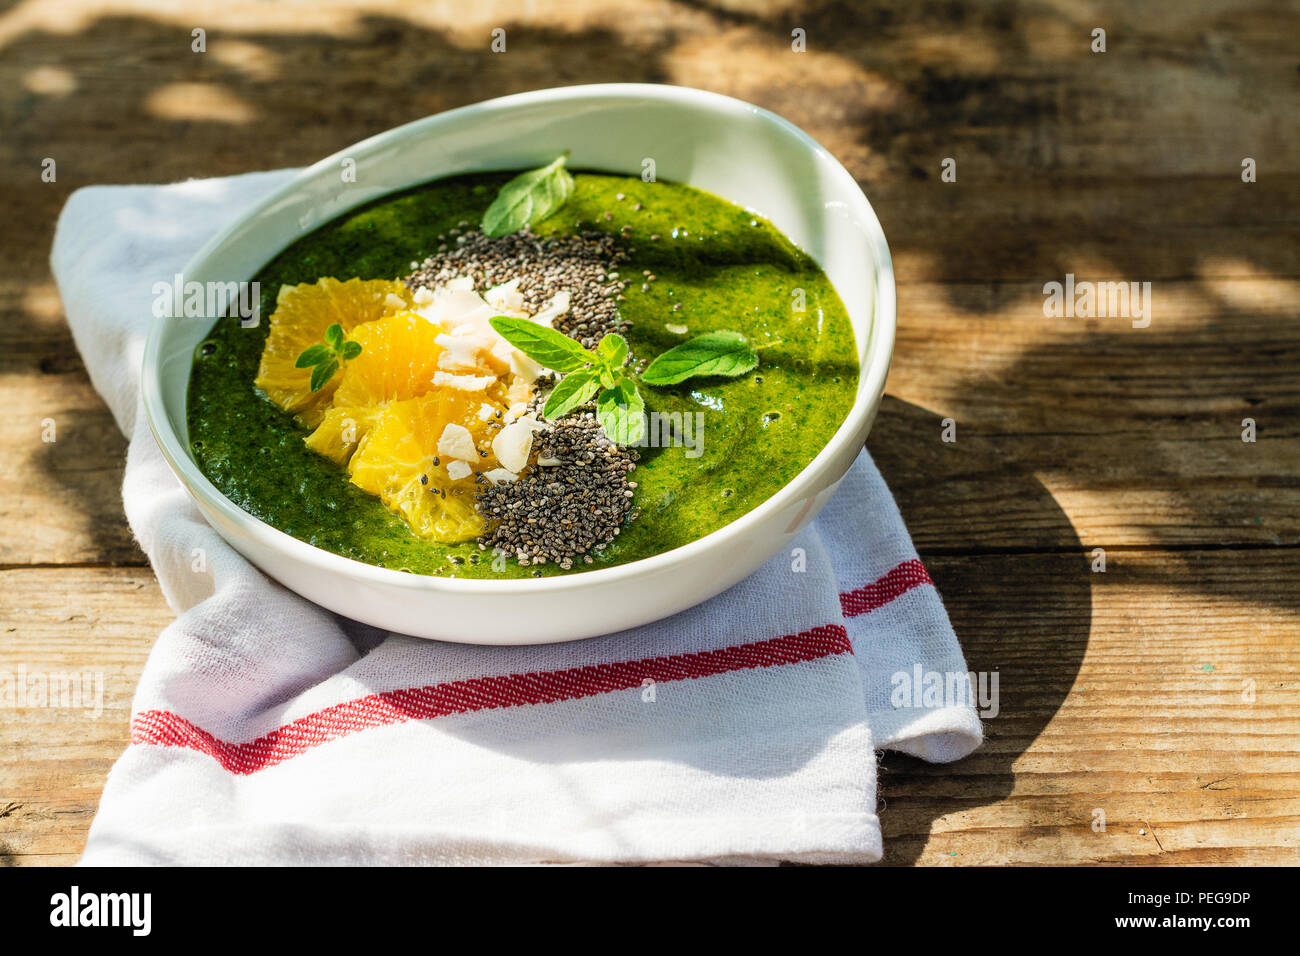 Green smoothie bowl with banana, spinach, chia seeds and oranges - Stock Image